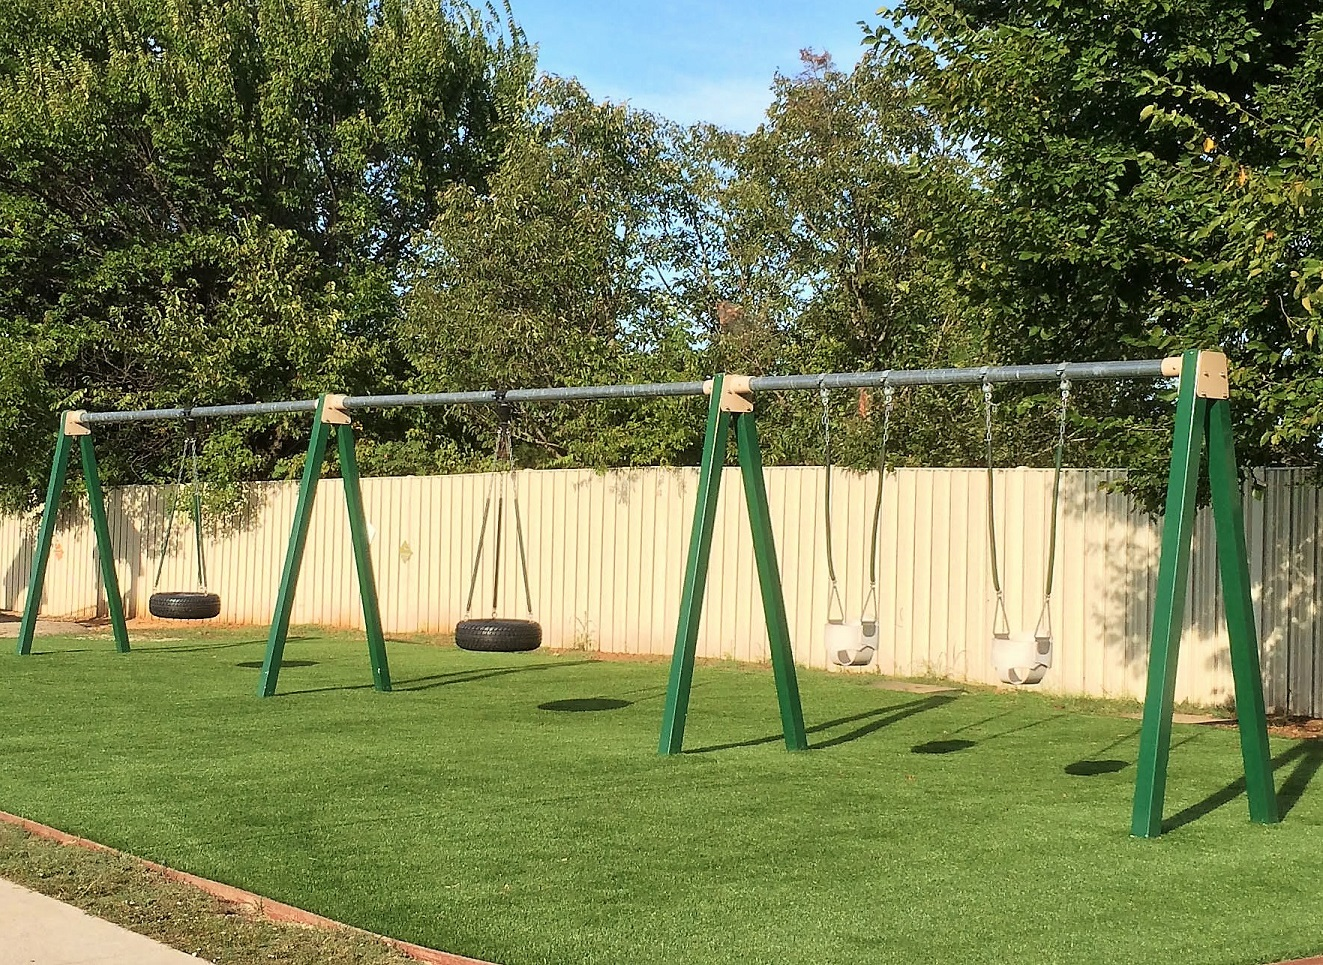 Playgound Artificial Turf in Oklahoma City